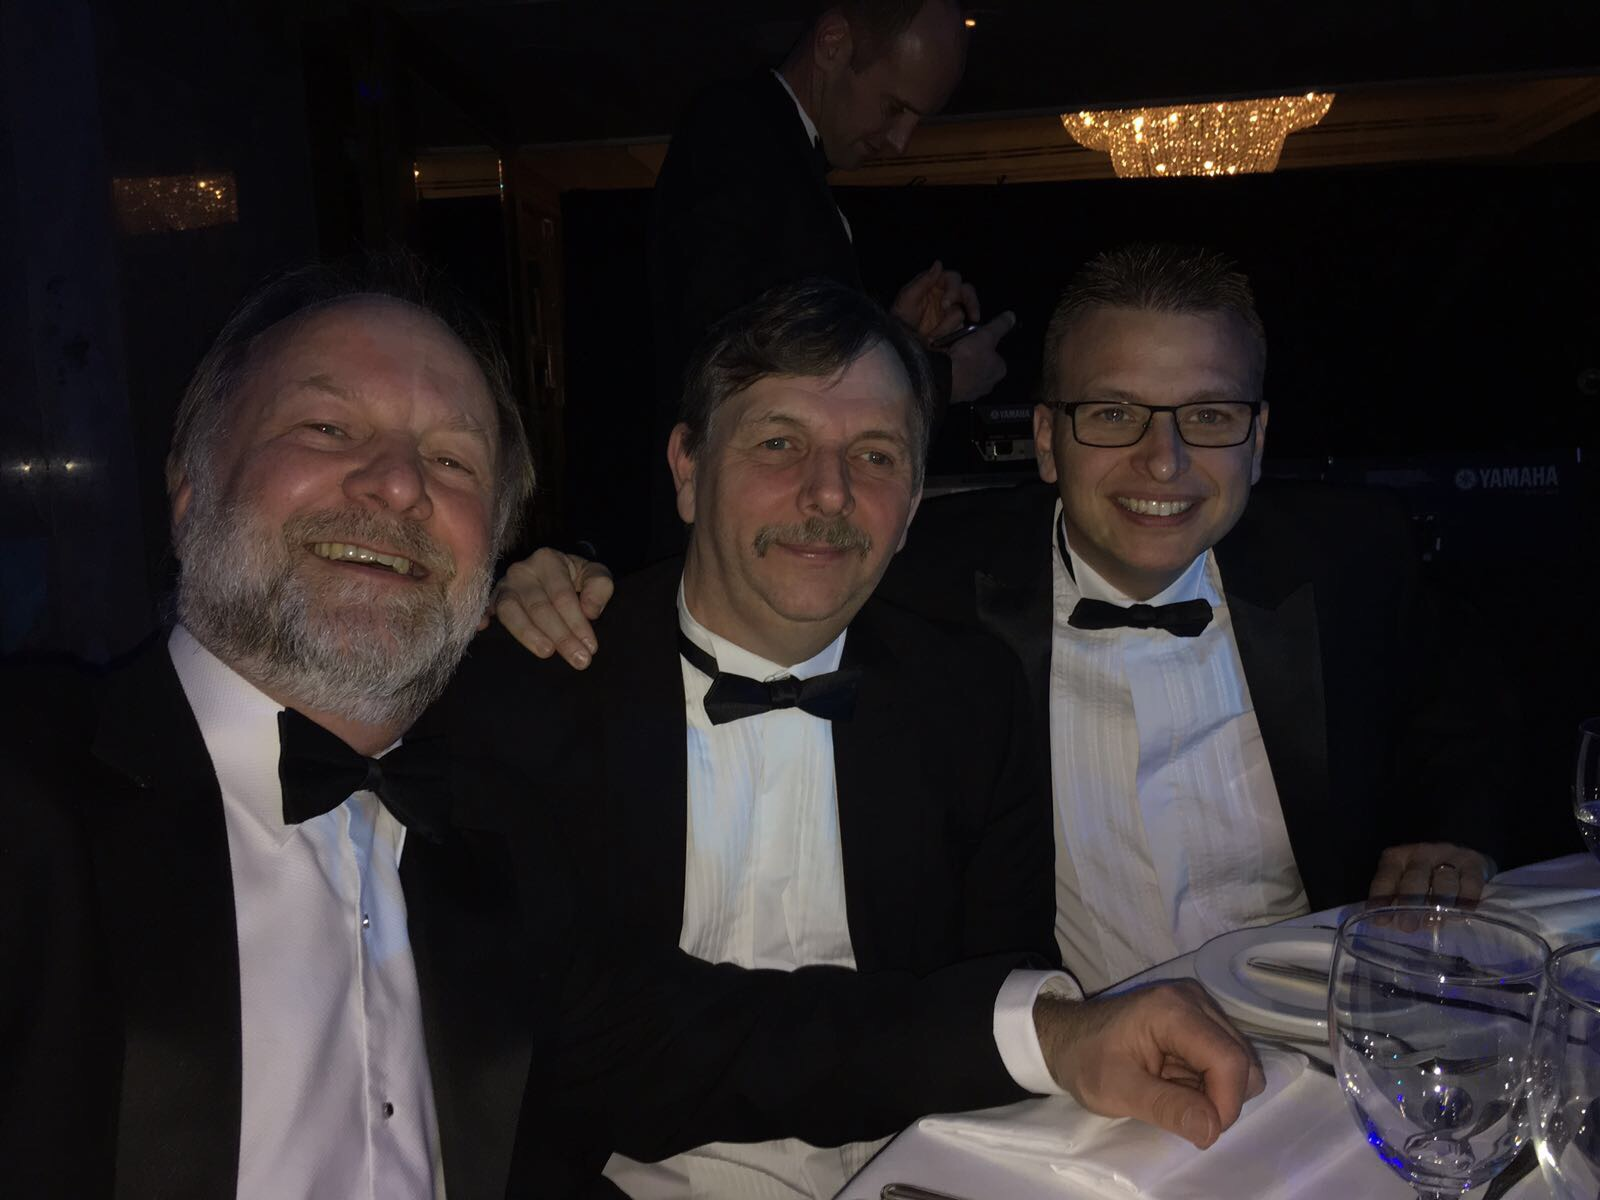 [Pictured Left to Right] Bill Pilkington (Sales Manager), David Dawson (Service Manager) & Philip Birchall (Managing Director)